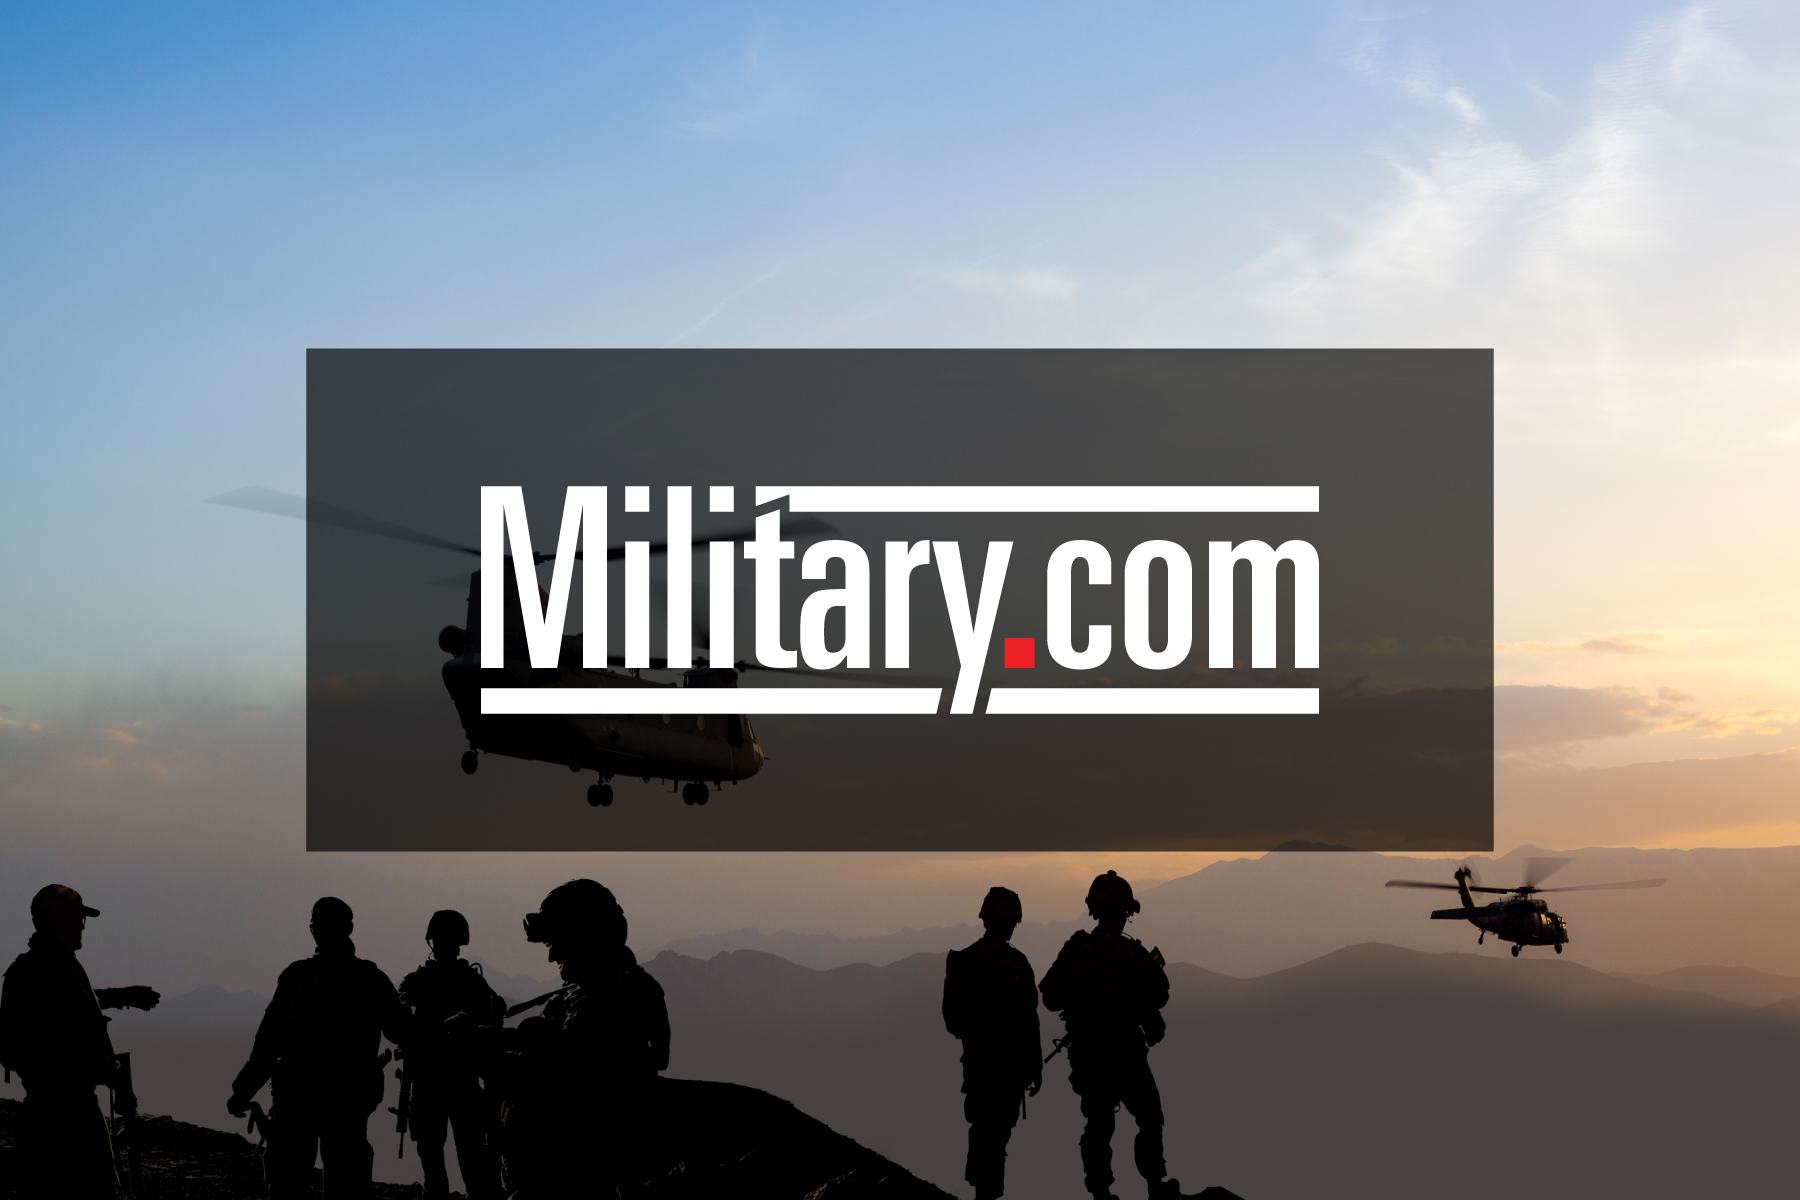 Cmdr. Derick Armstrong was relieved of command of The Sullivans in May, about six months after his promotion, after several female crew members alleged that he sexually harassed women aboard ship, a Navy report shows.